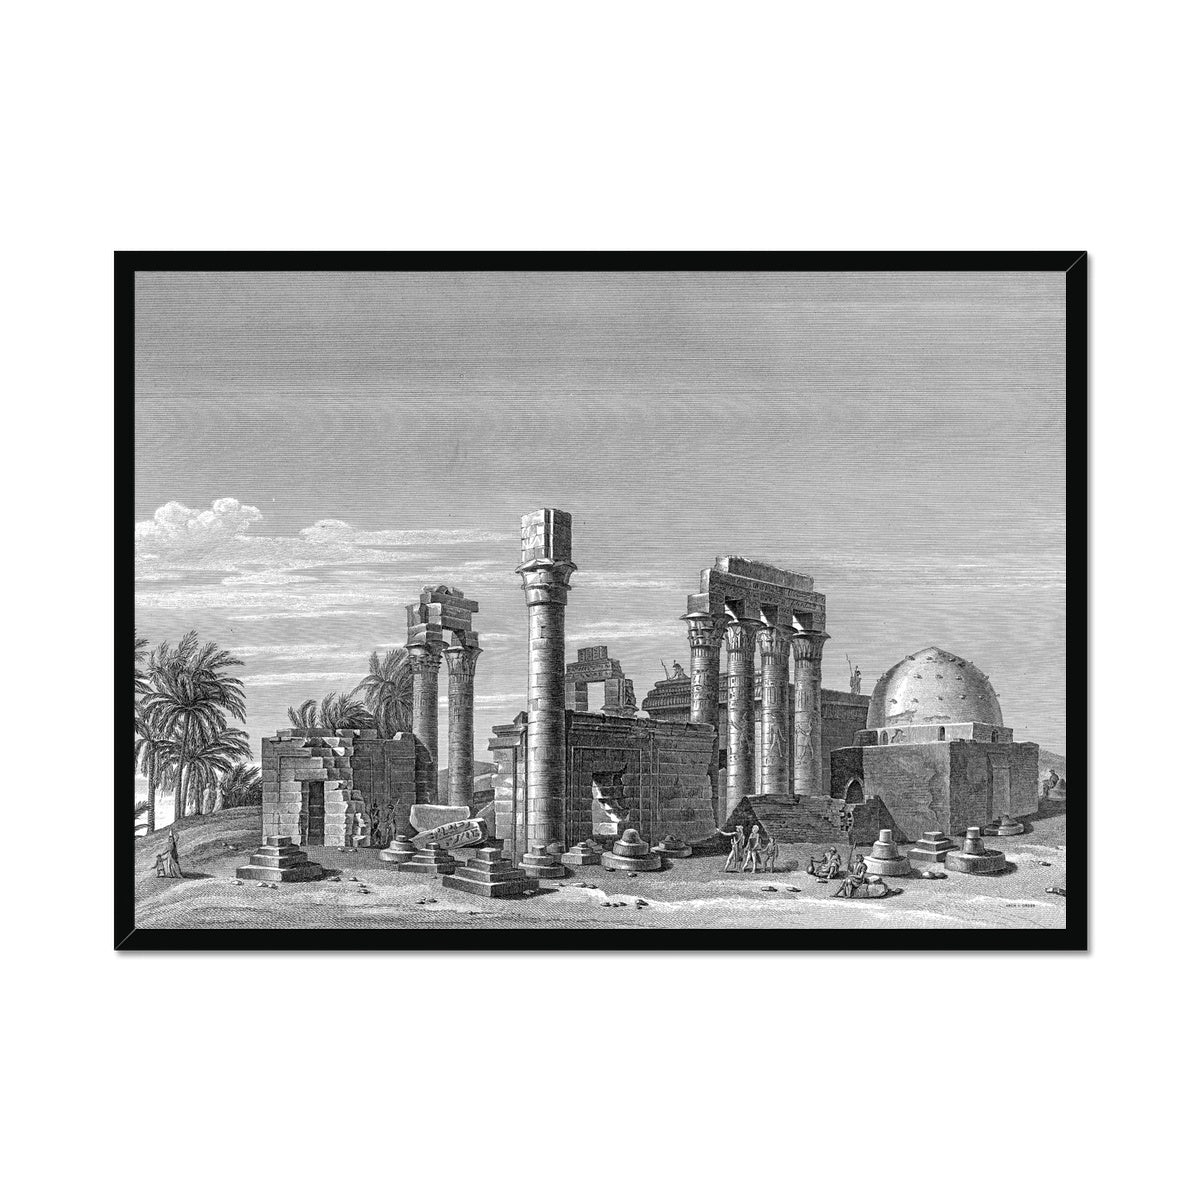 The Temple of Hermonthis Ruins 3 - Armant Egypt -  Framed Print